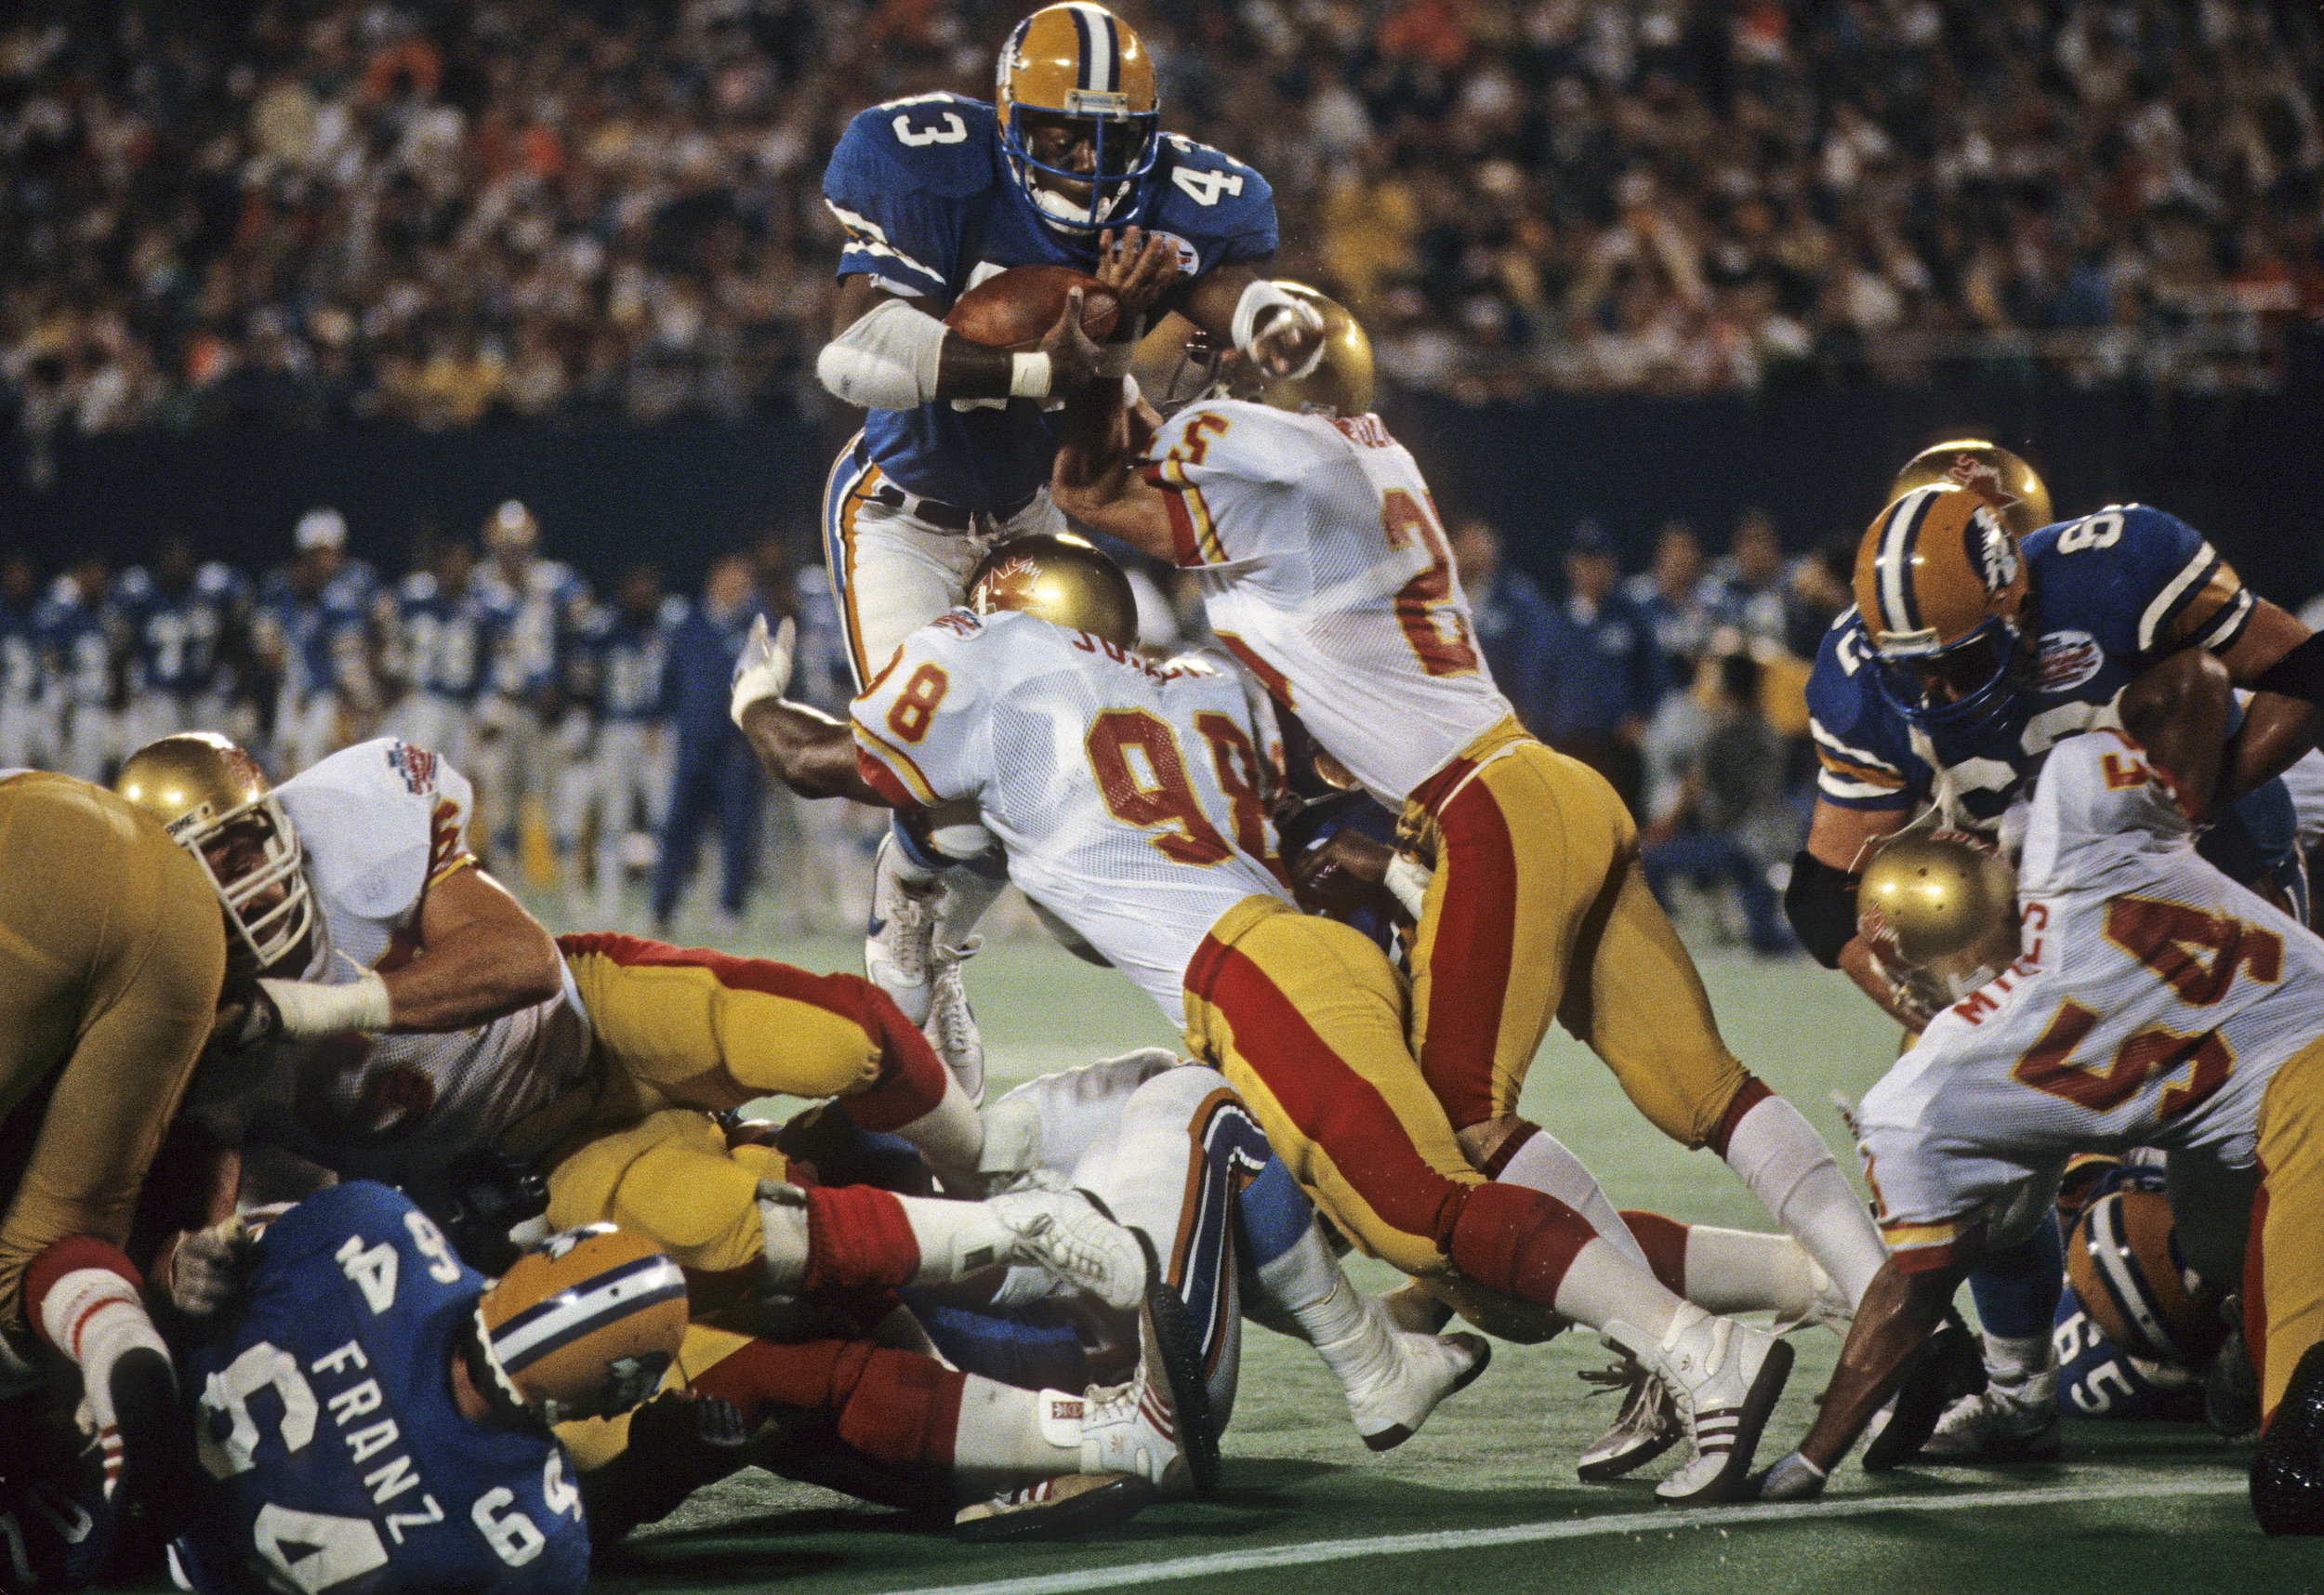 THE TEAM THAT TIME FORGOT tells the story of one of pro football's most victorious teams, whose three-year run through the USFL set a standard of excellence seldom seen before or since. They were the ultimate underdog team. A band of rookies, aging veterans and guys looking for a second chance, thrown together in a start-up league, on a team facing countless obstacles, yet they won, and won, and won.What made the Stars special was not just the wins and the championships, but the relationships and connections the team made with a city. That a disparate group of men could come together for the sheer love of the game and produce a magical three-year run was inspiring